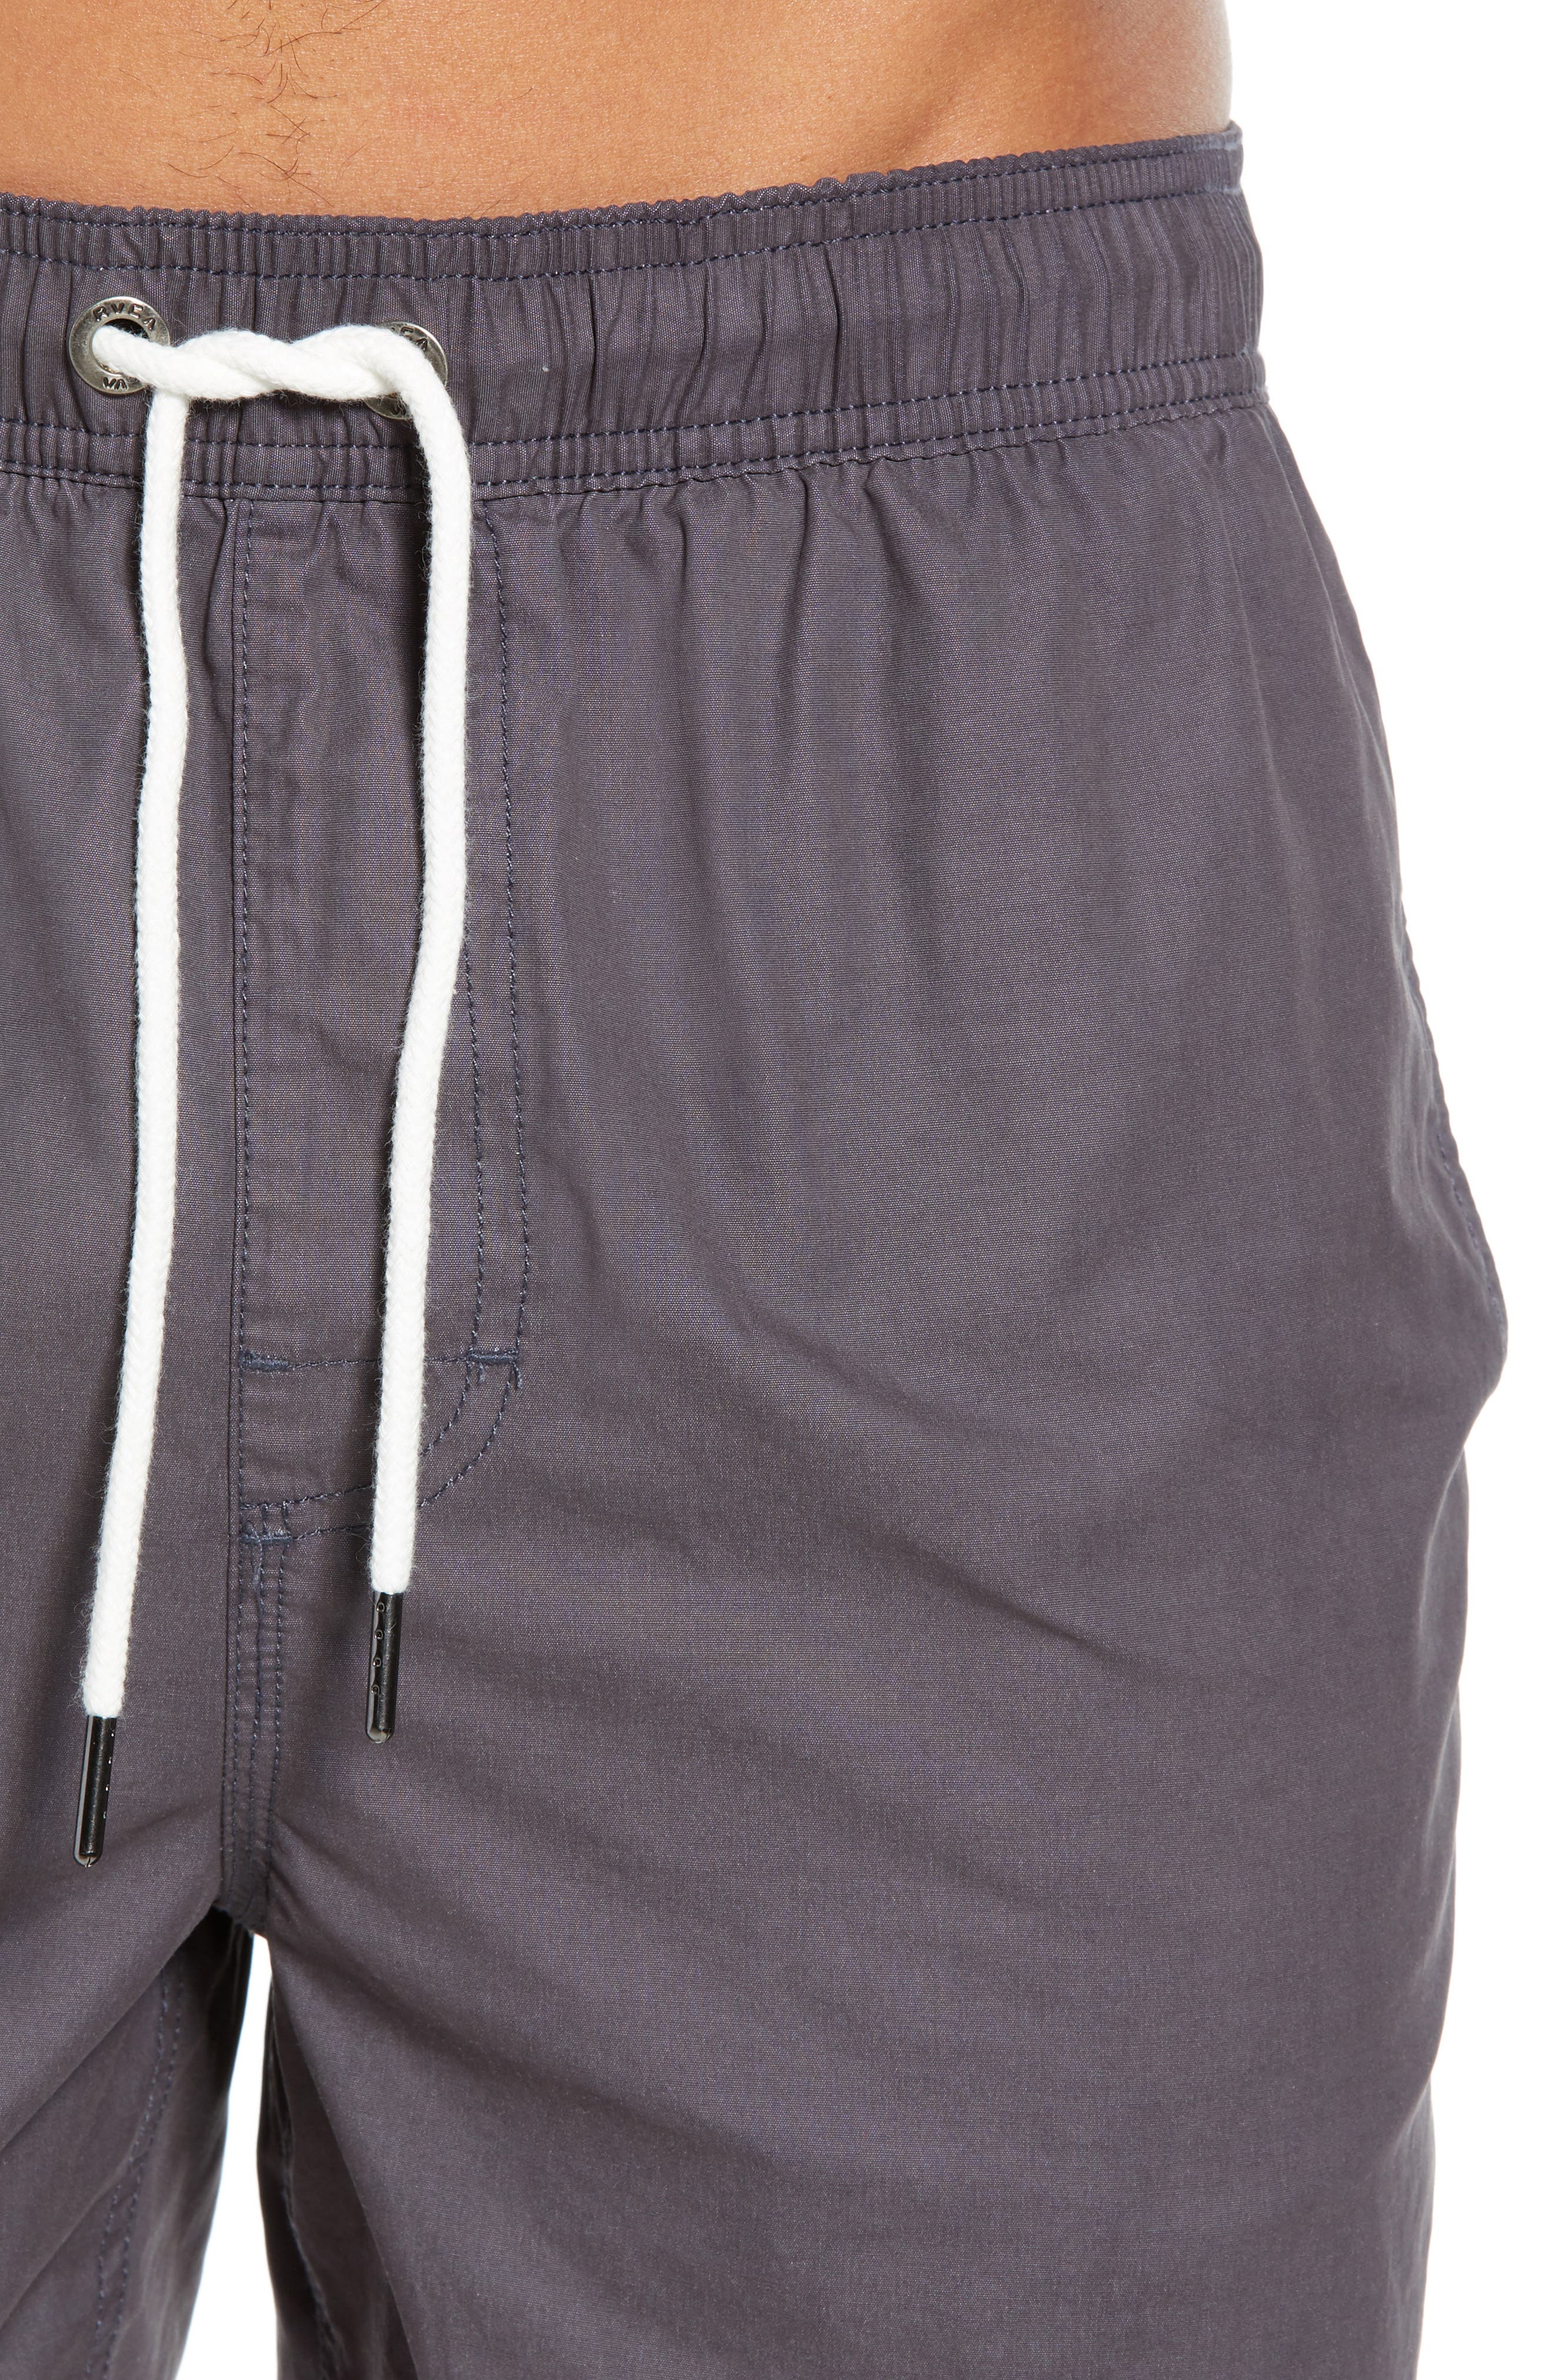 Horton Swim Trunks,                             Alternate thumbnail 4, color,                             OIL GREY